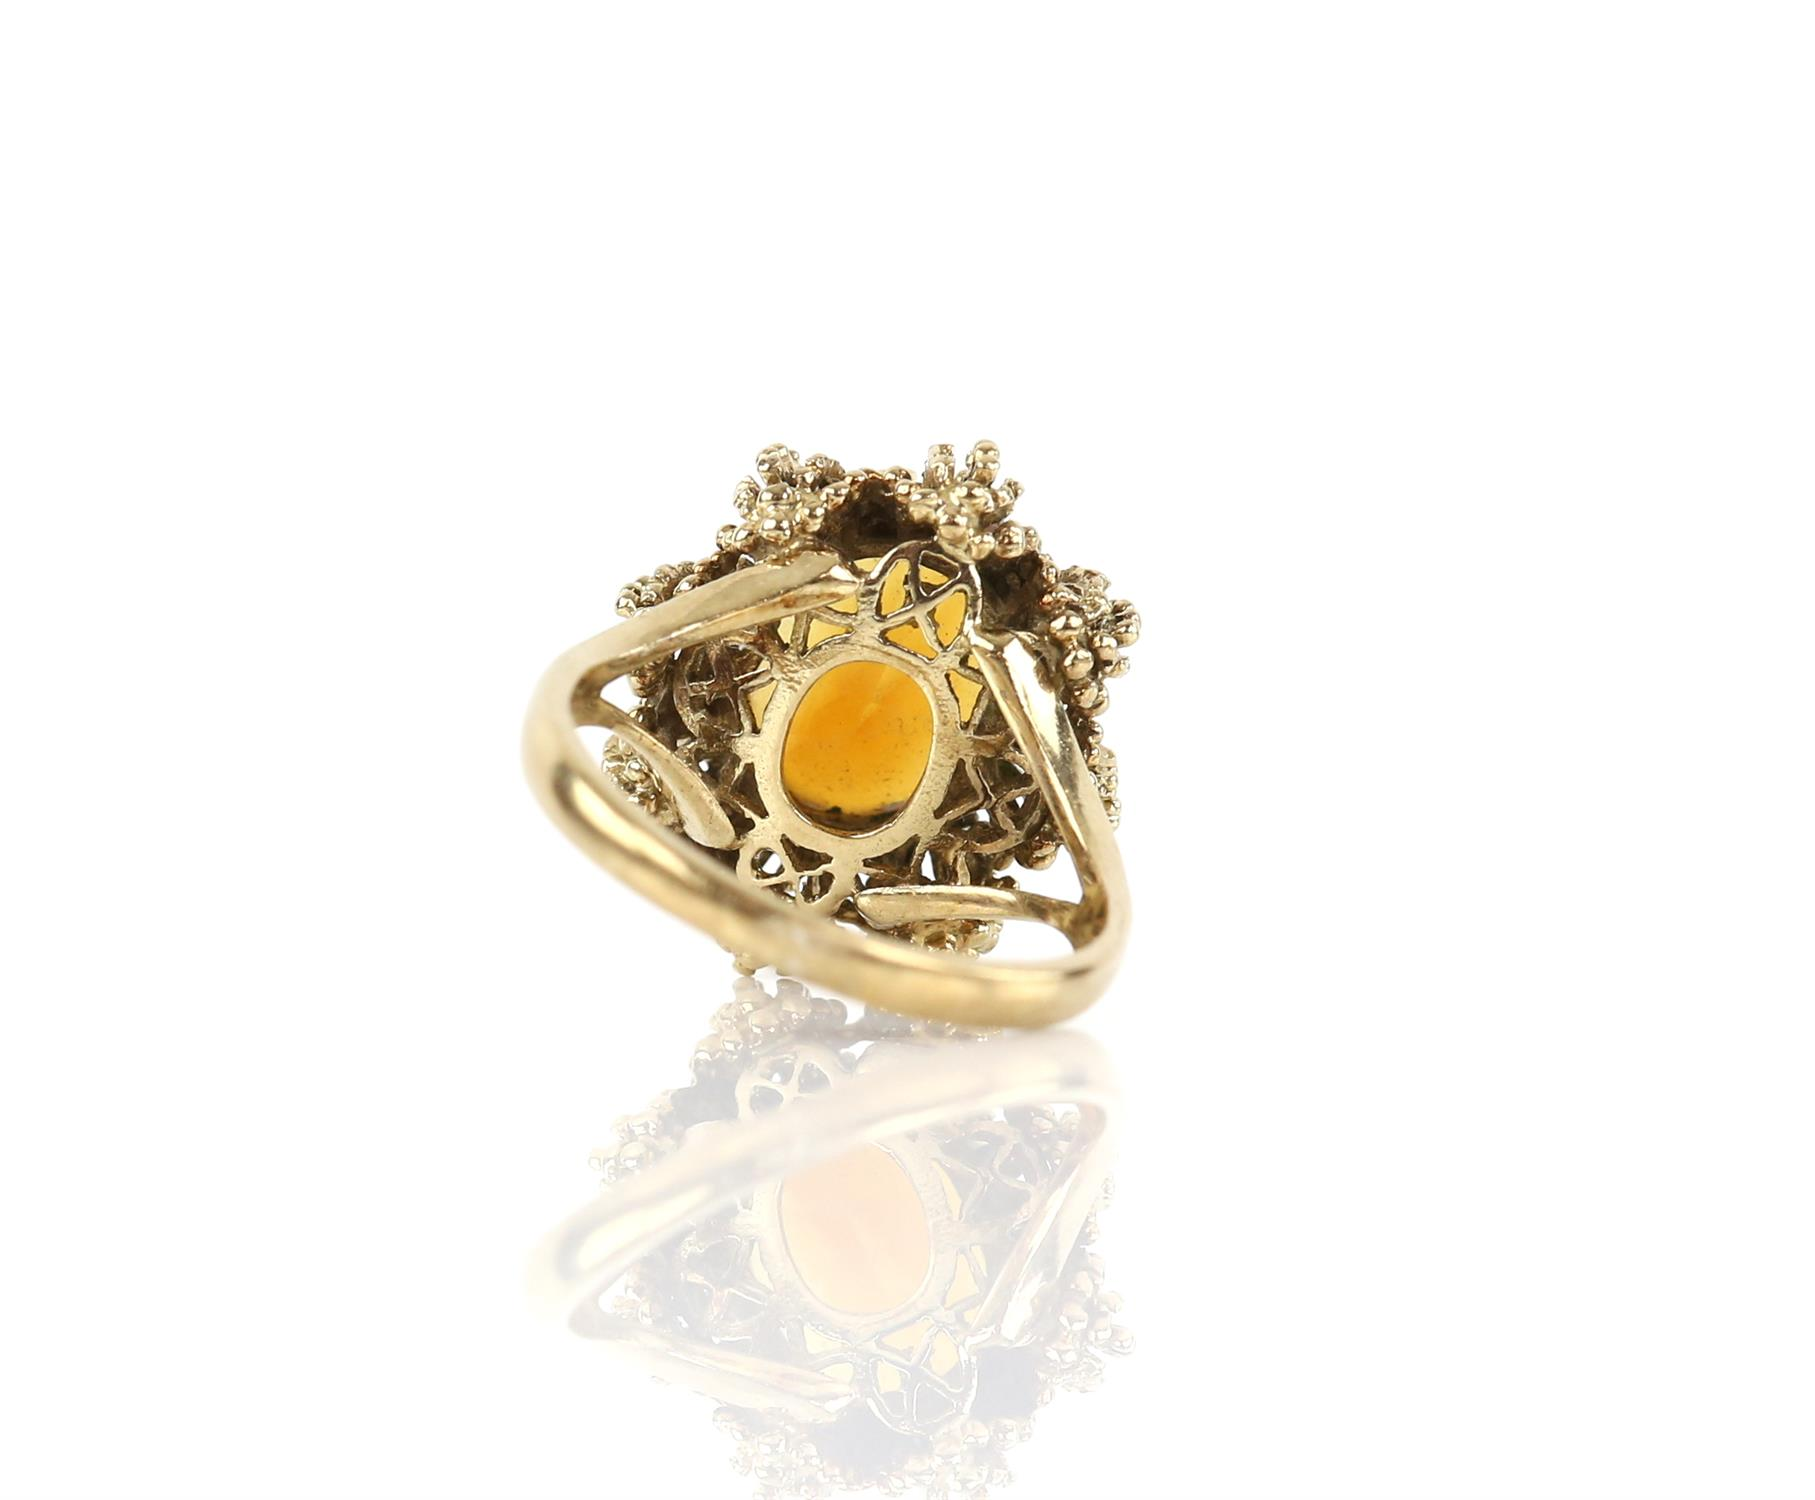 Vintage citrine ring, mixed cut citrine, measuring 12.1 x 10 mm, in a textured 9 ct mount, - Image 3 of 3